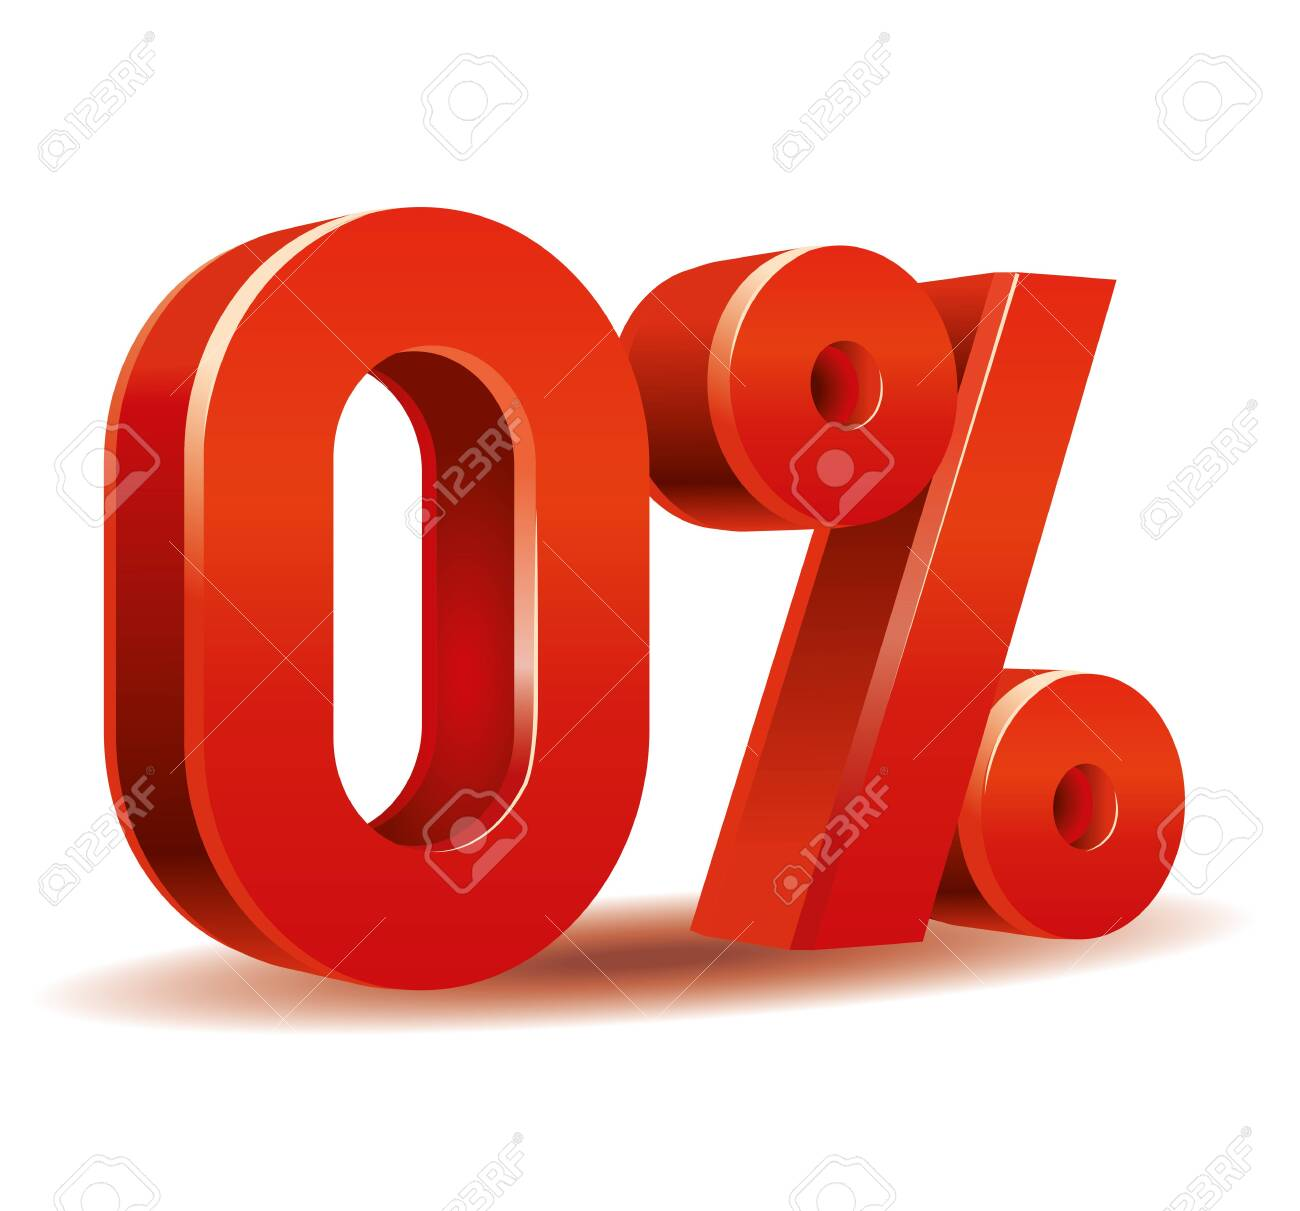 illustration vector in red color of percent isolated in white background - 142747431